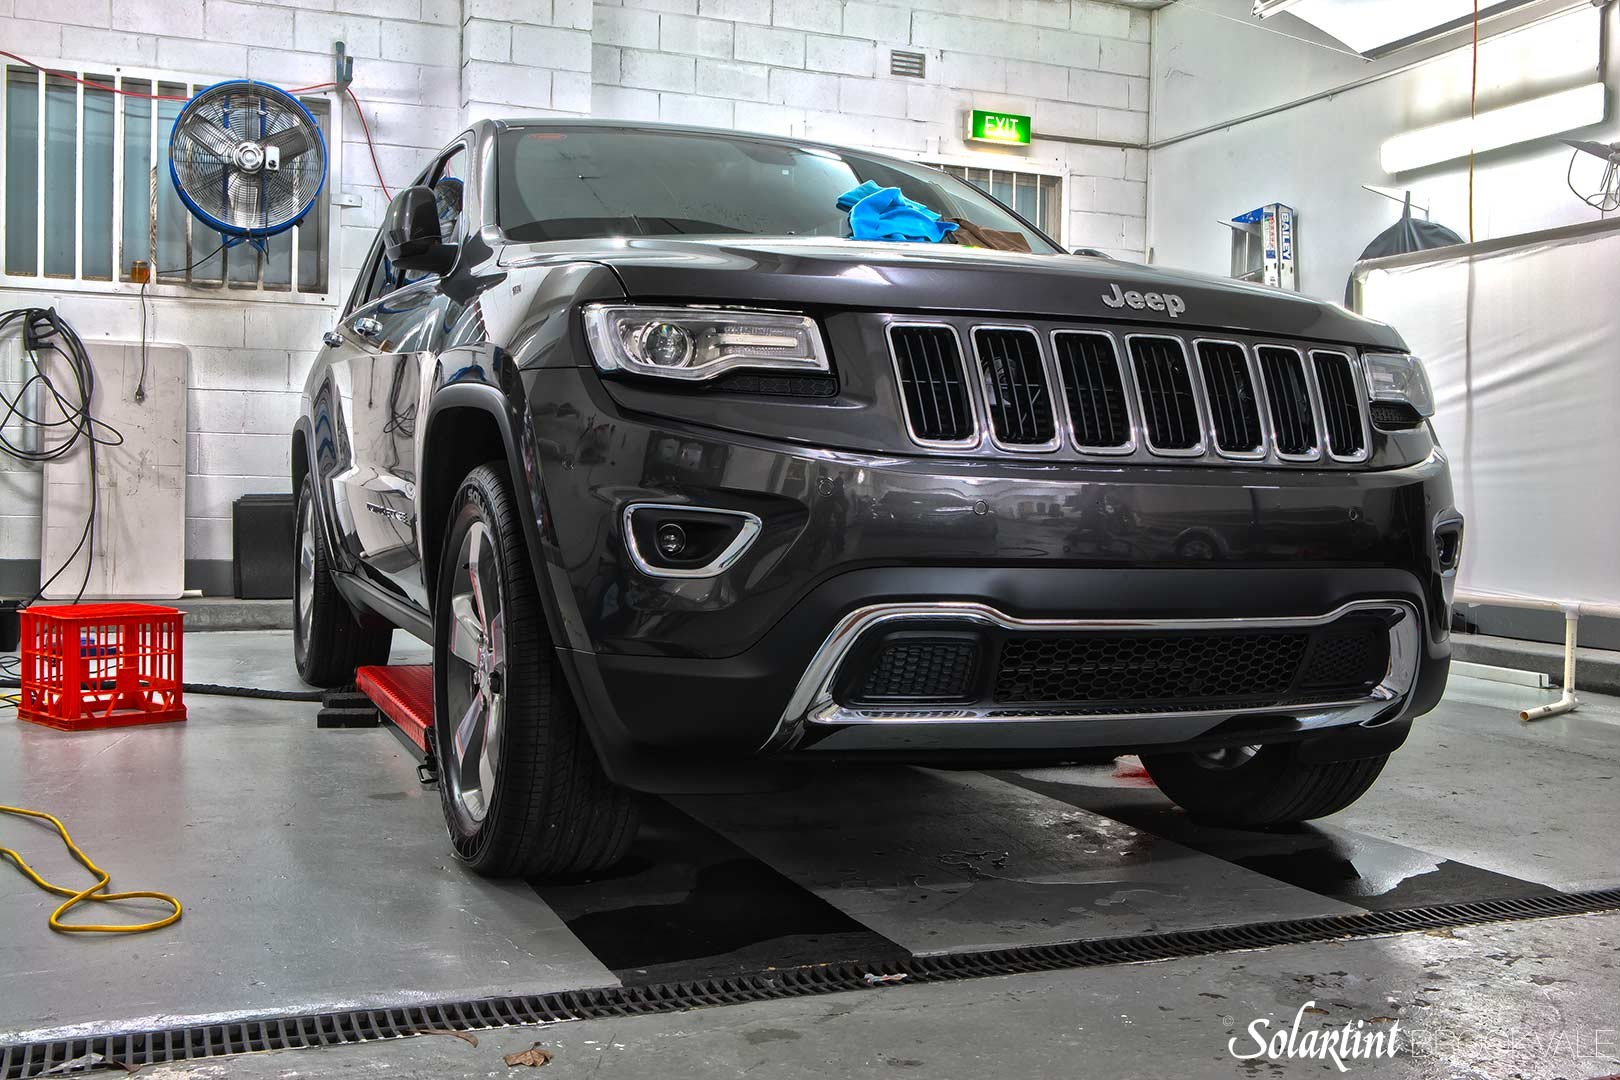 Jeep Cherokee '15 - Work In Progress